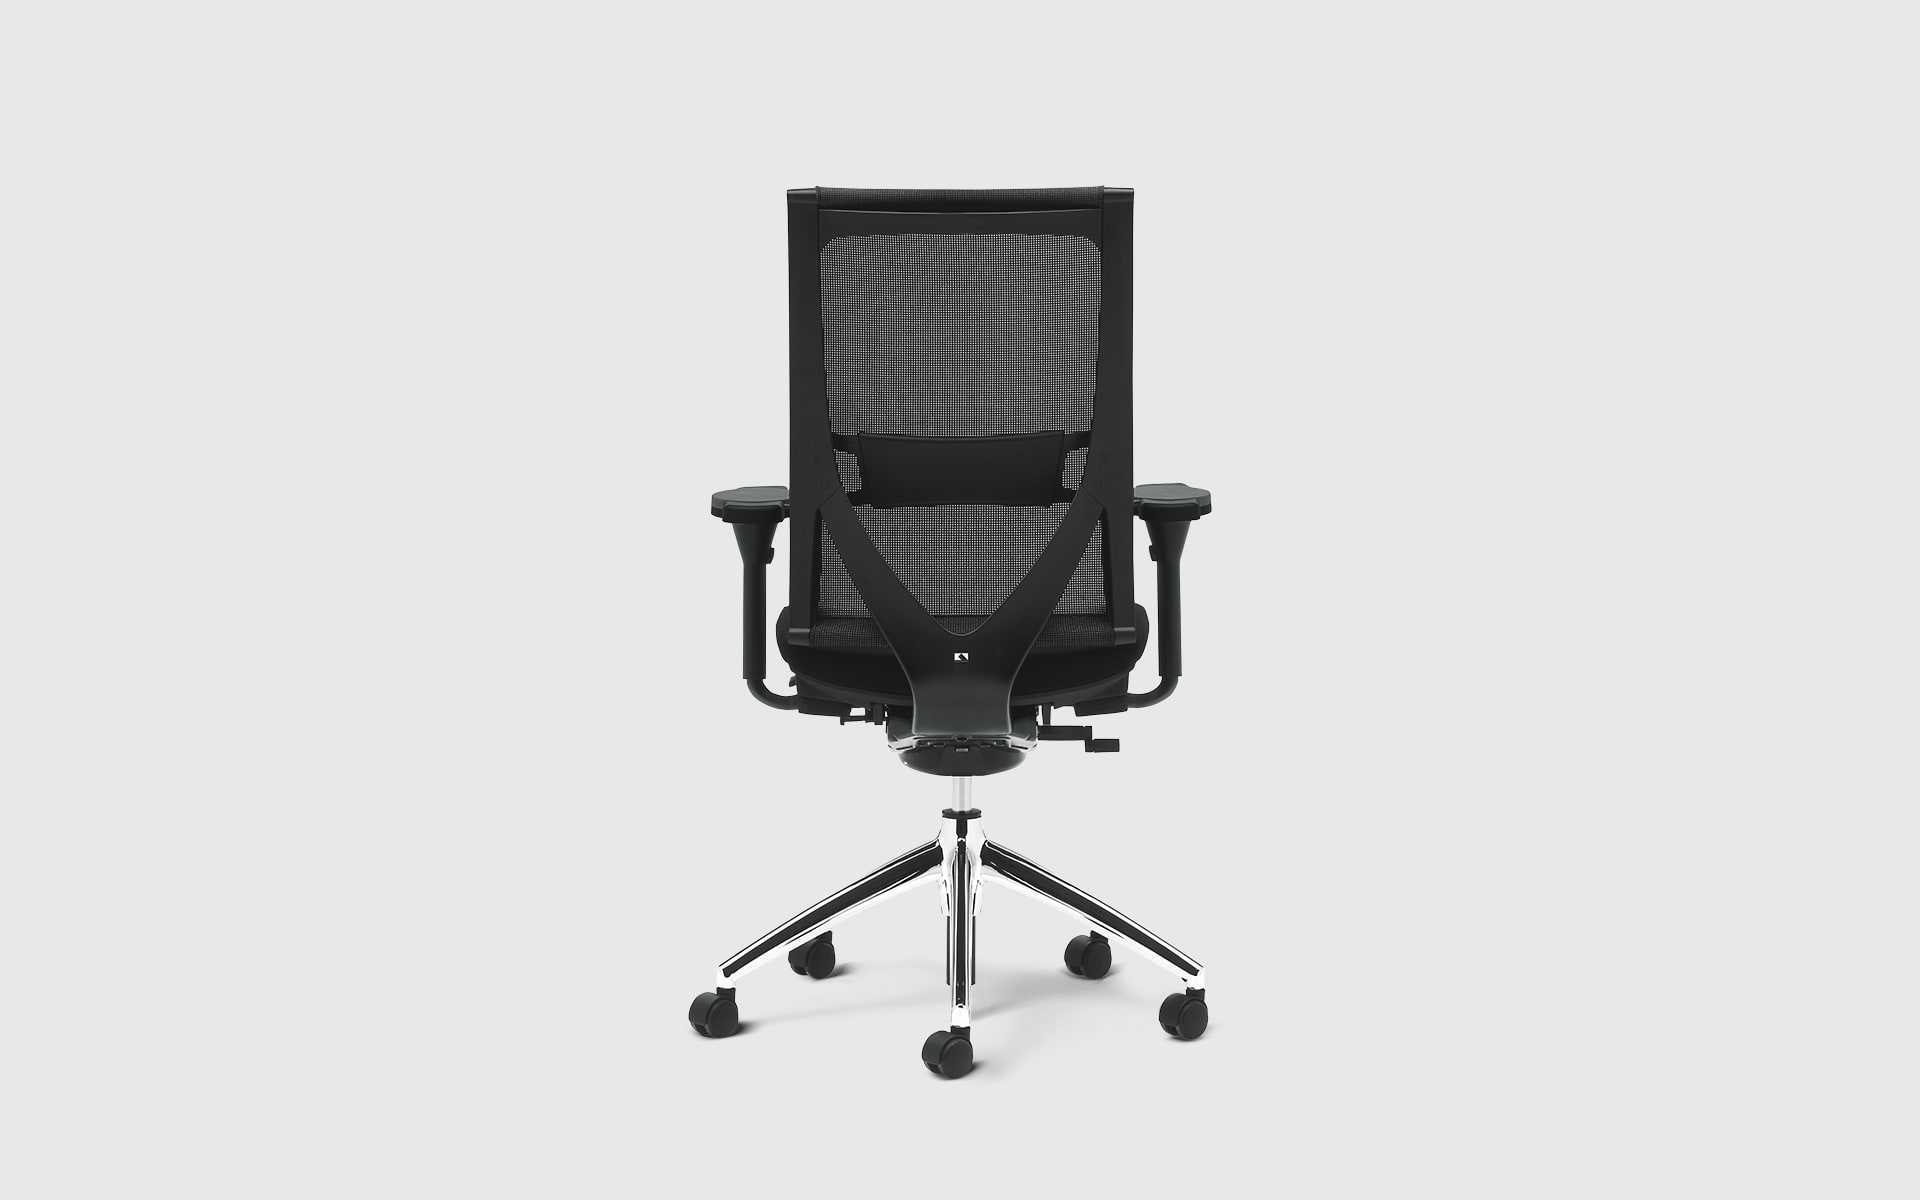 K+N Okay office chair by ITO Design in black